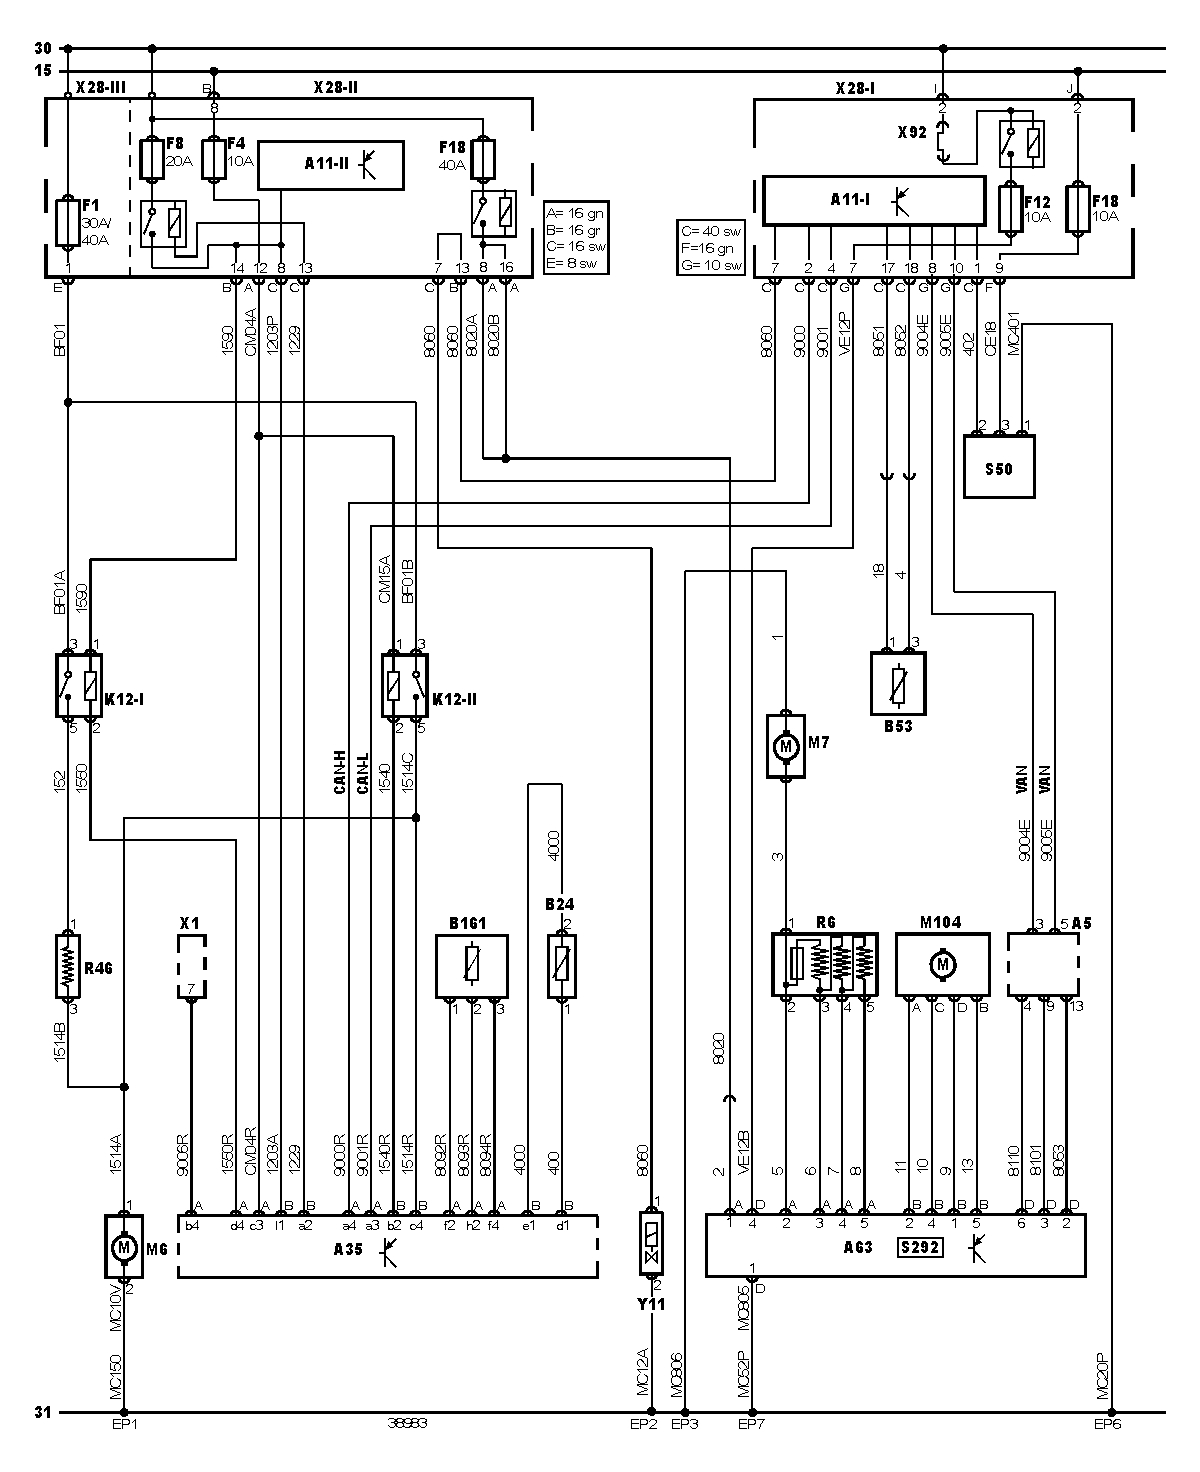 Diagram Of A Boxer Schematics Data Wiring Diagrams Peugeot Problems 4 Vw Odicis Box Truck